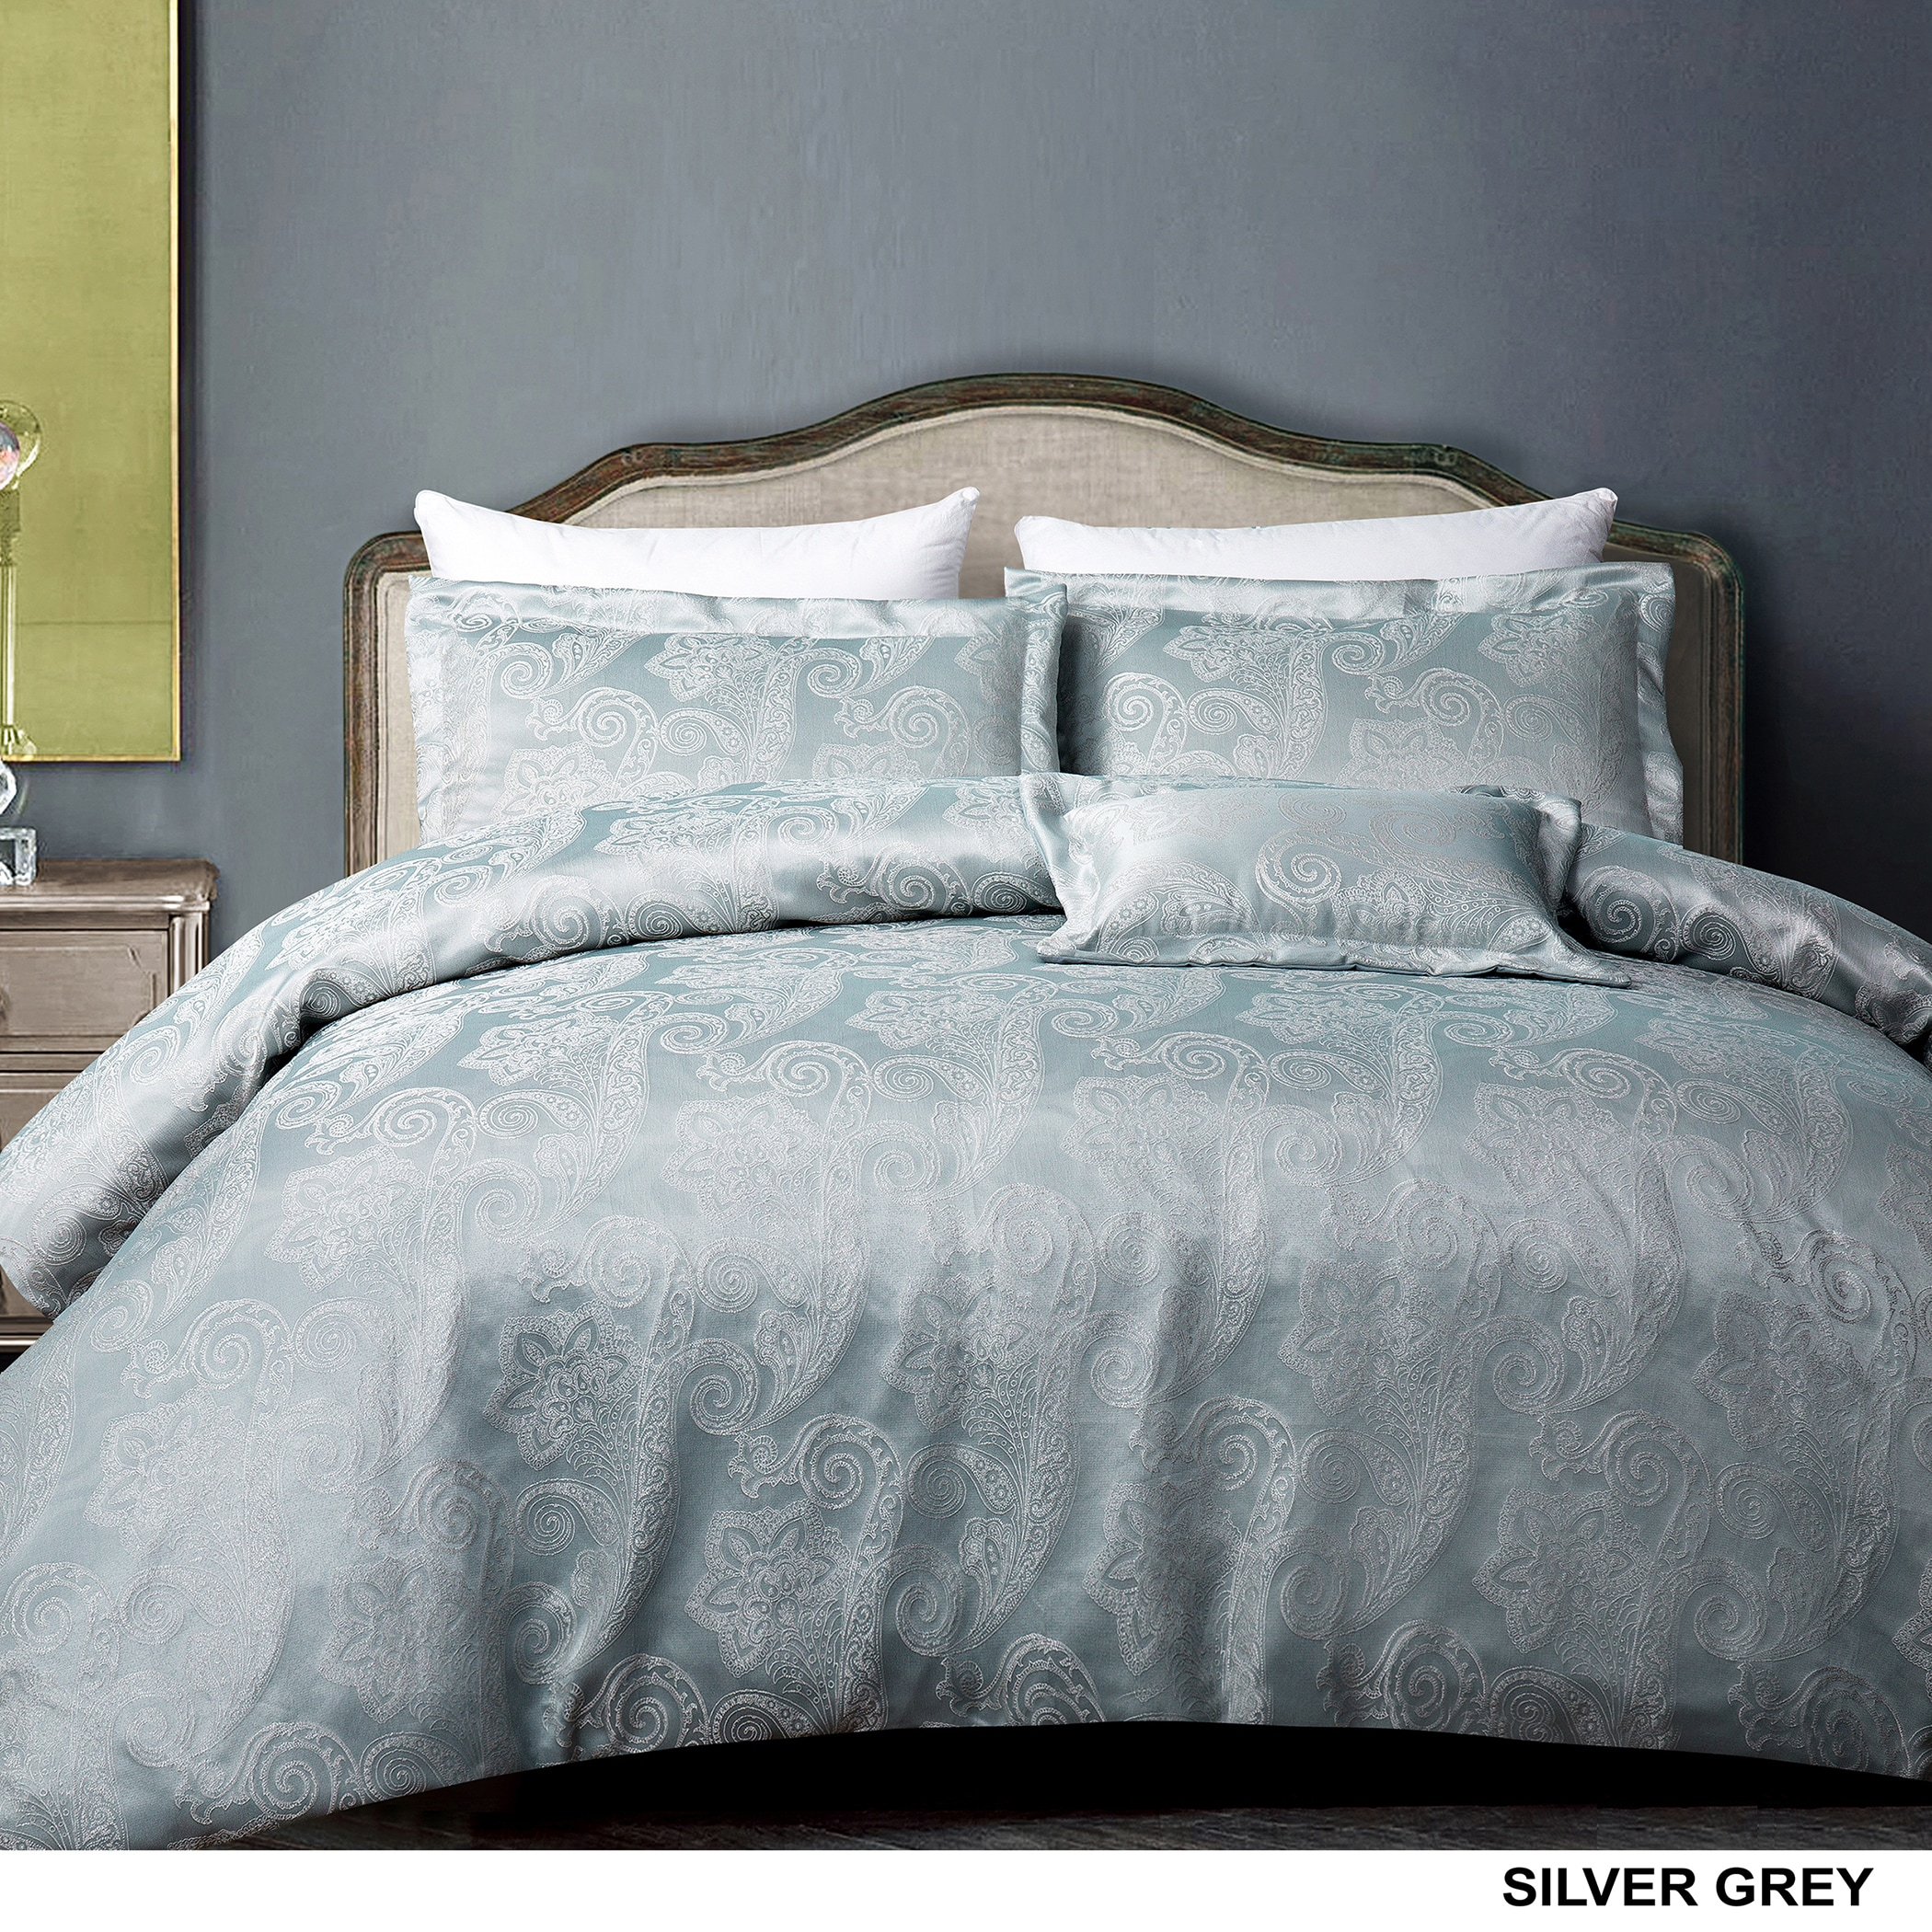 Shop Hotel Paisley Luxe Comforter Set - On Sale - Free Shipping ...